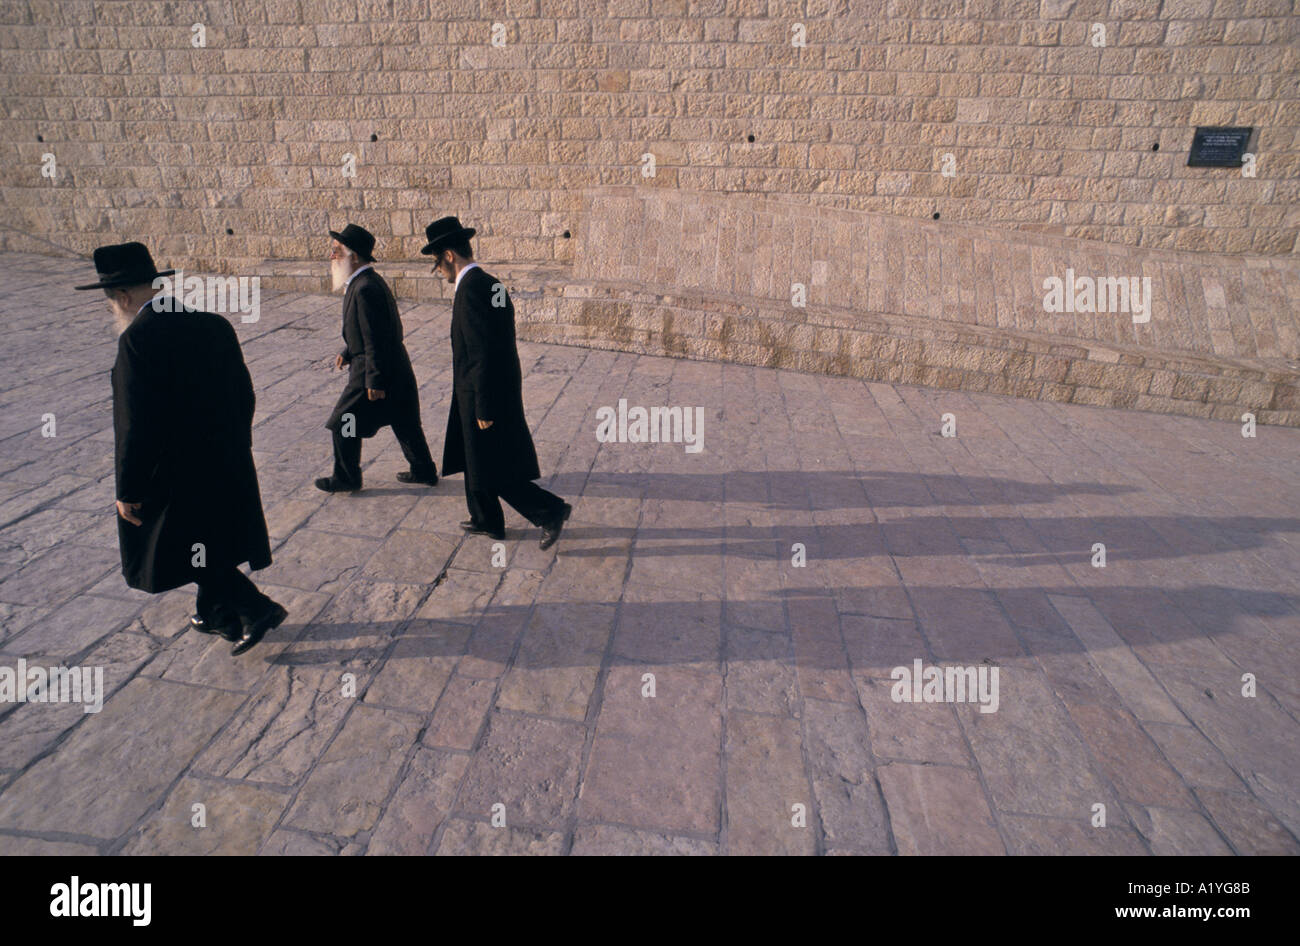 3 JEWISH MEN WALK BY THE WAILING WALL DURING INTIFADA JERUSALEM 1992 - Stock Image